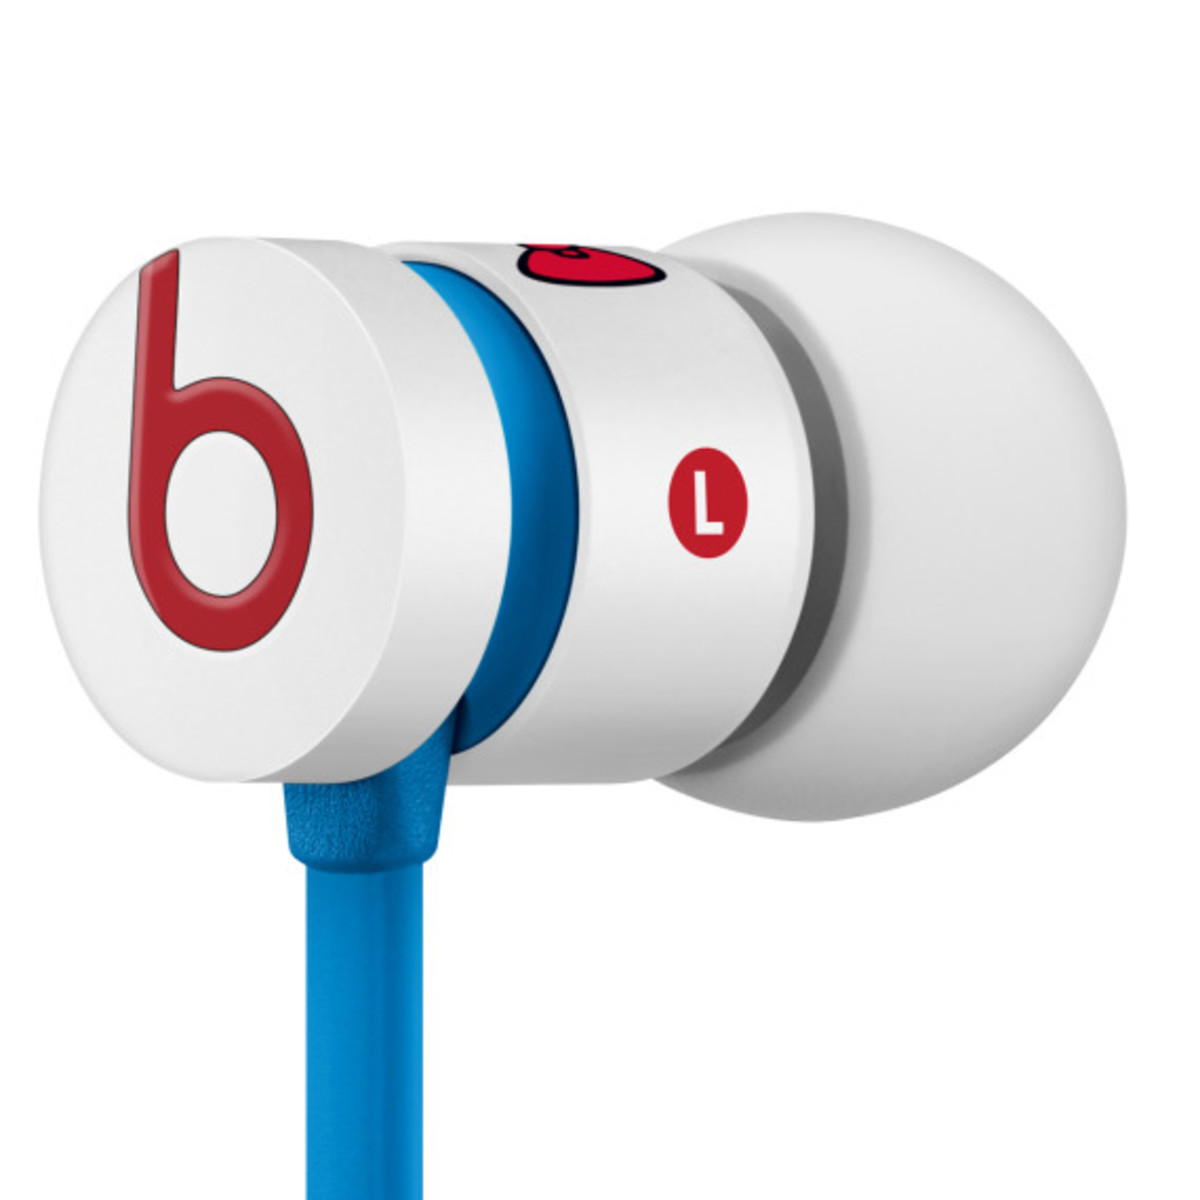 Beats by Dr. Dre x Hello Kitty - 40th Anniversary urBeats Earphones - 5